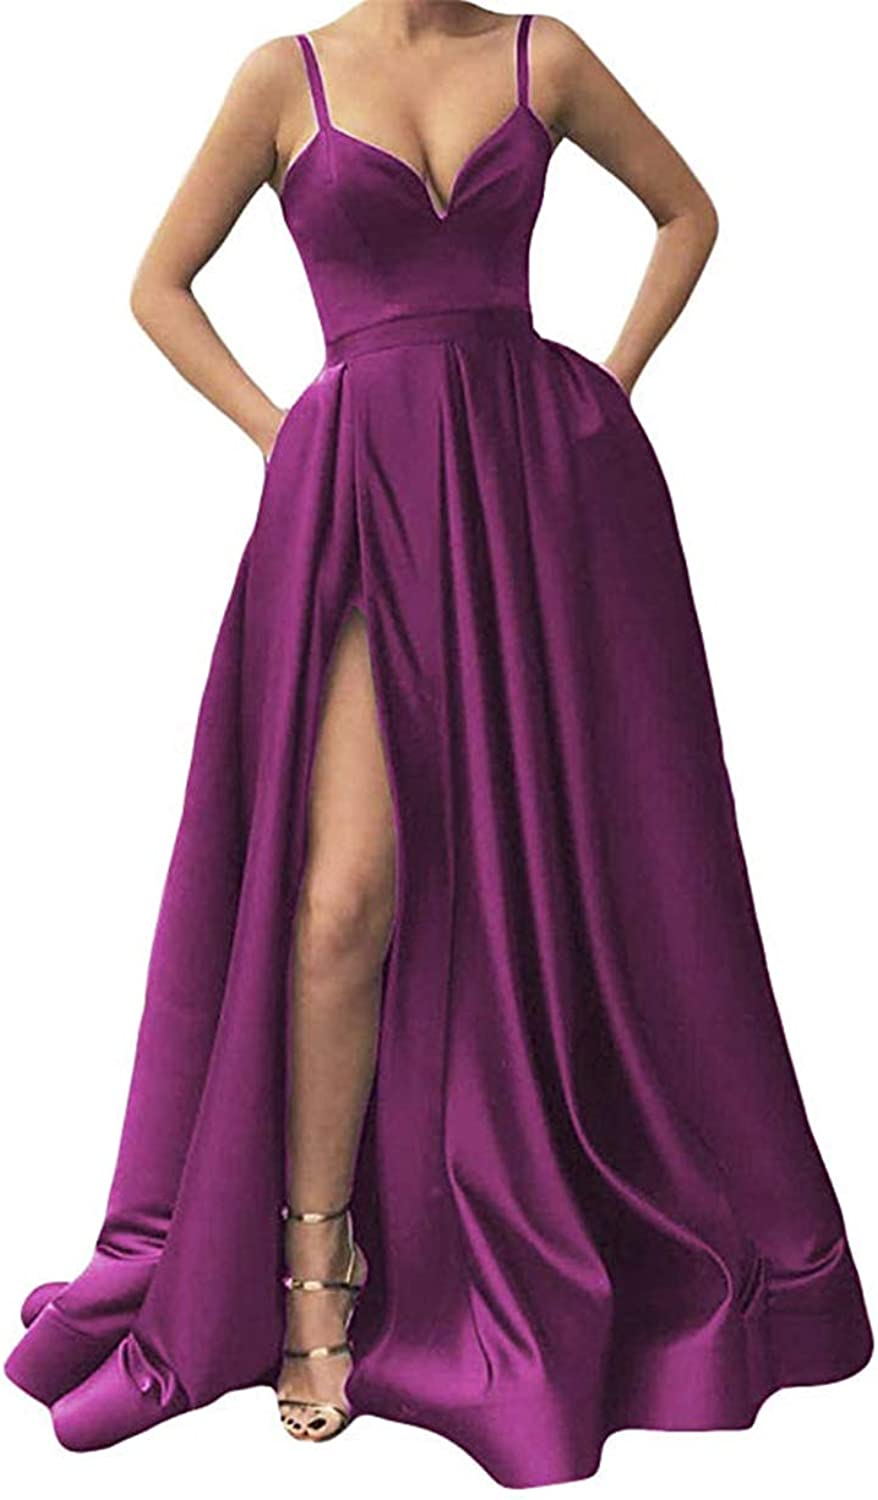 Clothfun Women's Long Spaghetti Strap Prom Dresses Satin with Slit Evening Formal Party Gowns PM30